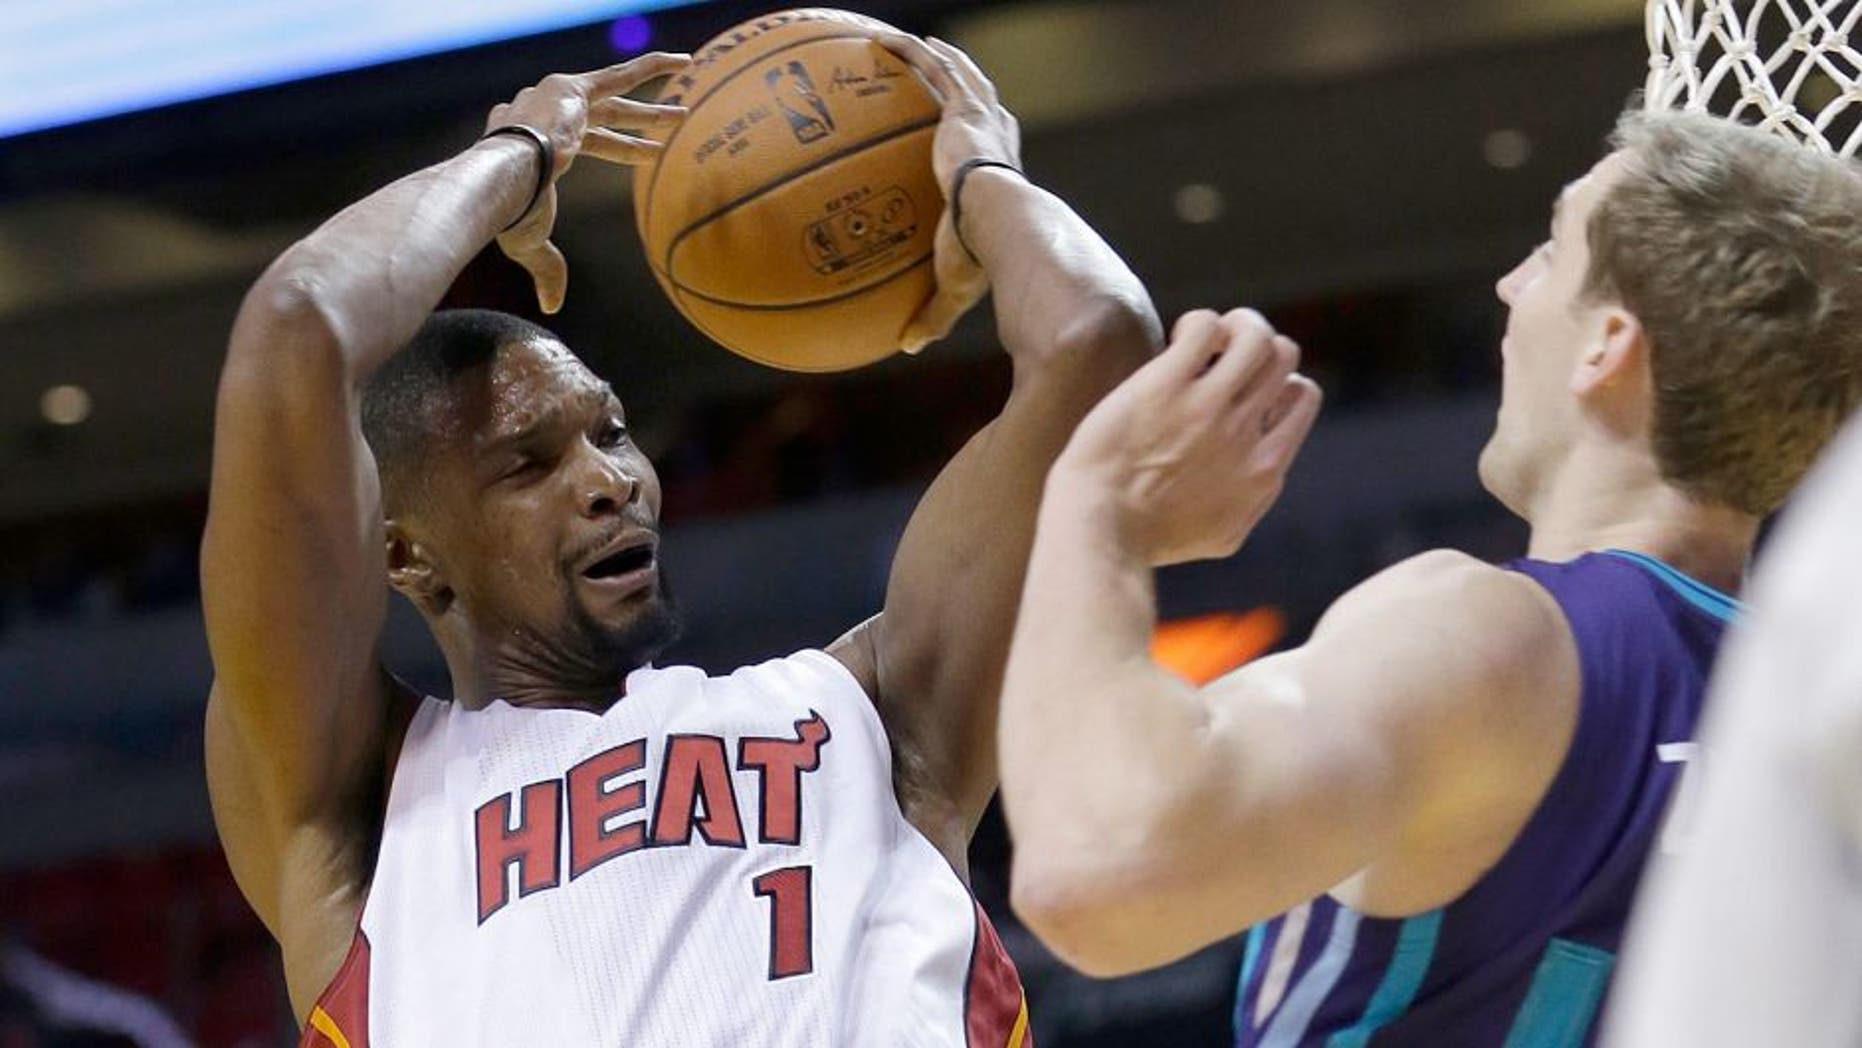 Miami Heat forward Chris Bosh (1) is fouled by Charlotte Hornets forward Cody Zeller (40) as Bosh goes to the basket in the first half of an NBA preseason basketball game, Sunday, Oct. 4, 2015, in Miami. (AP Photo/Alan Diaz)